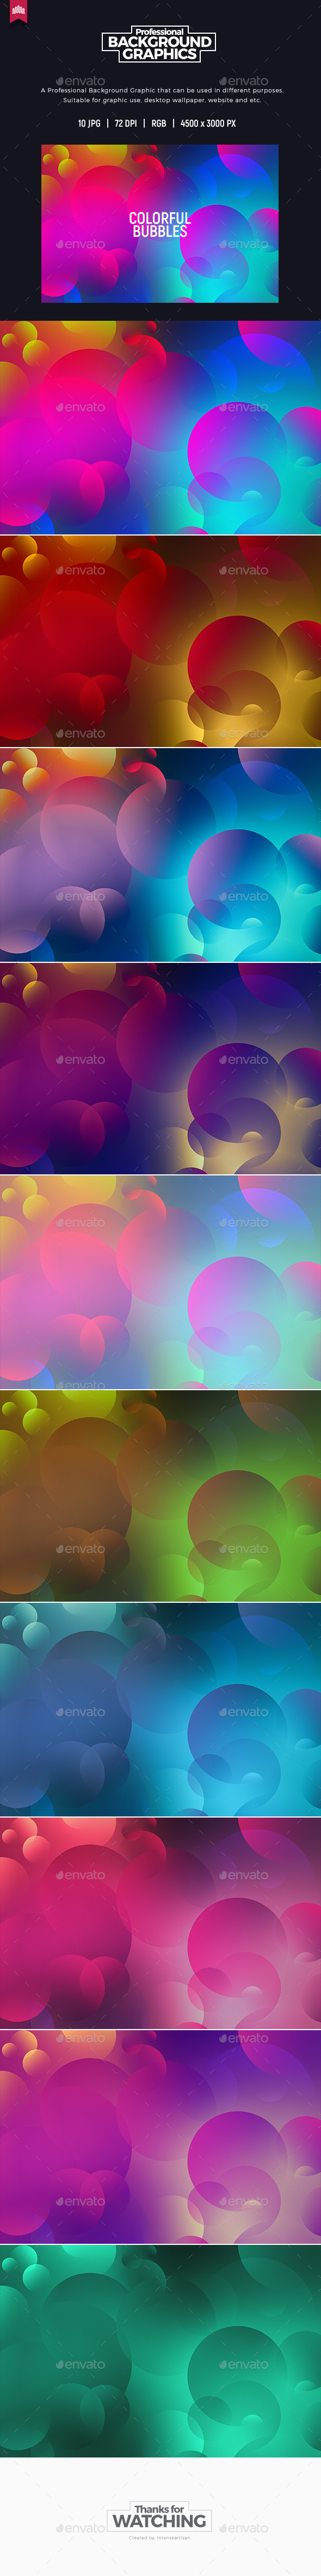 Colorful Bubbles Background - Abstract Backgrounds